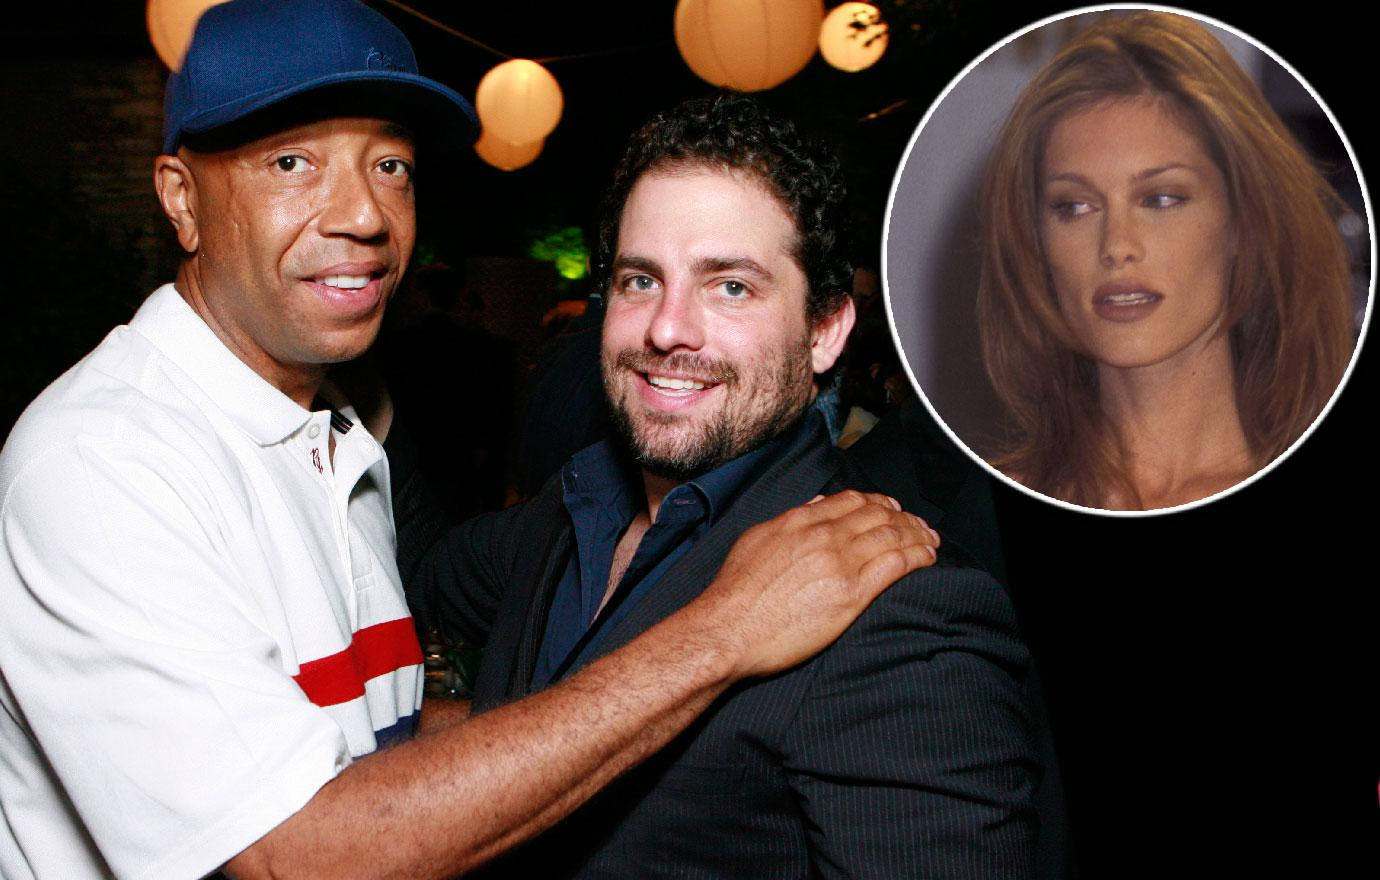 Model accuses Russell Simmons Of Rape While Brett Ratner Watched